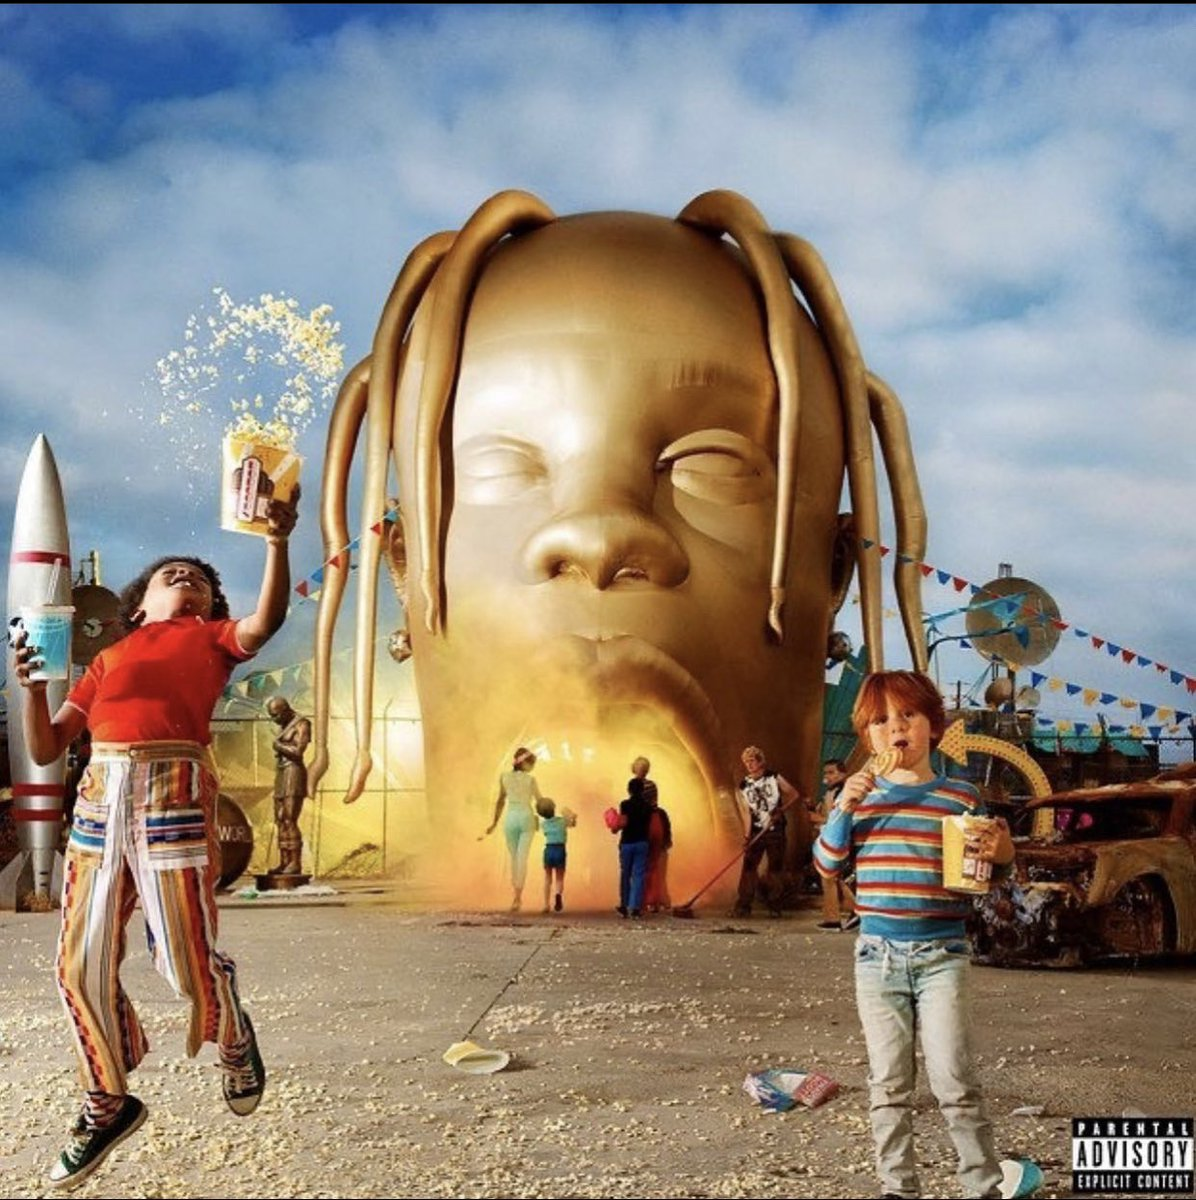 """2 years who today, #TravisScott released 'ASTROWORLD...' featuring the tracks """"Sicko Mode"""", """"Yosemite"""" and """"Butterfly Effect"""". Comment your favorite song off this album below! 👇🎶 @trvisXX #HipHopHistory"""